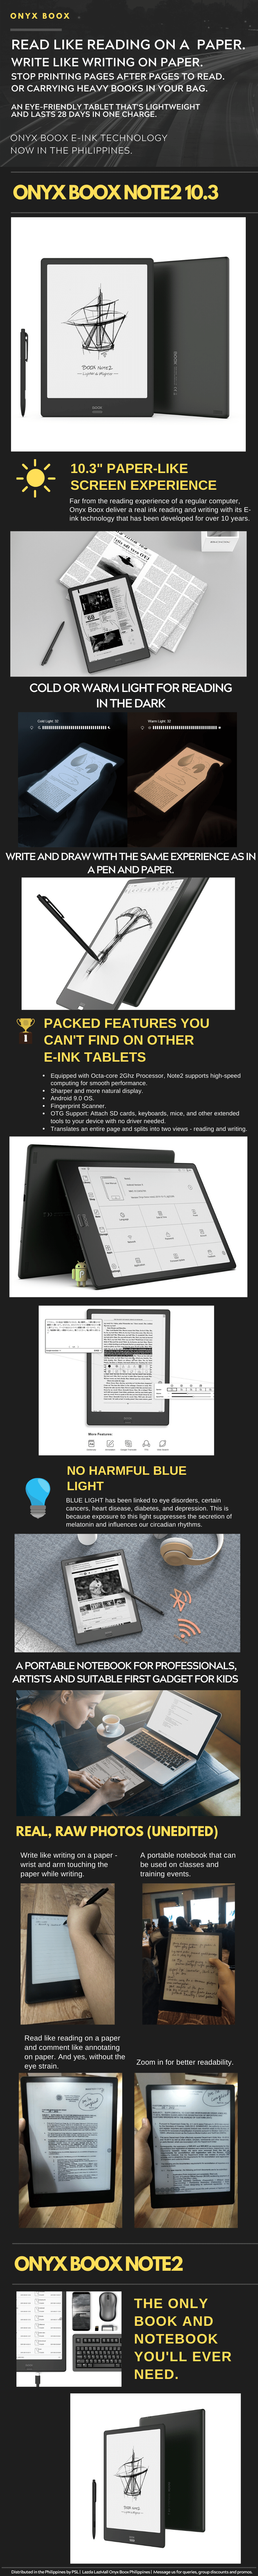 Onyx Boox Note2 10.3 info-graphics and Product Description and Photos by PSL